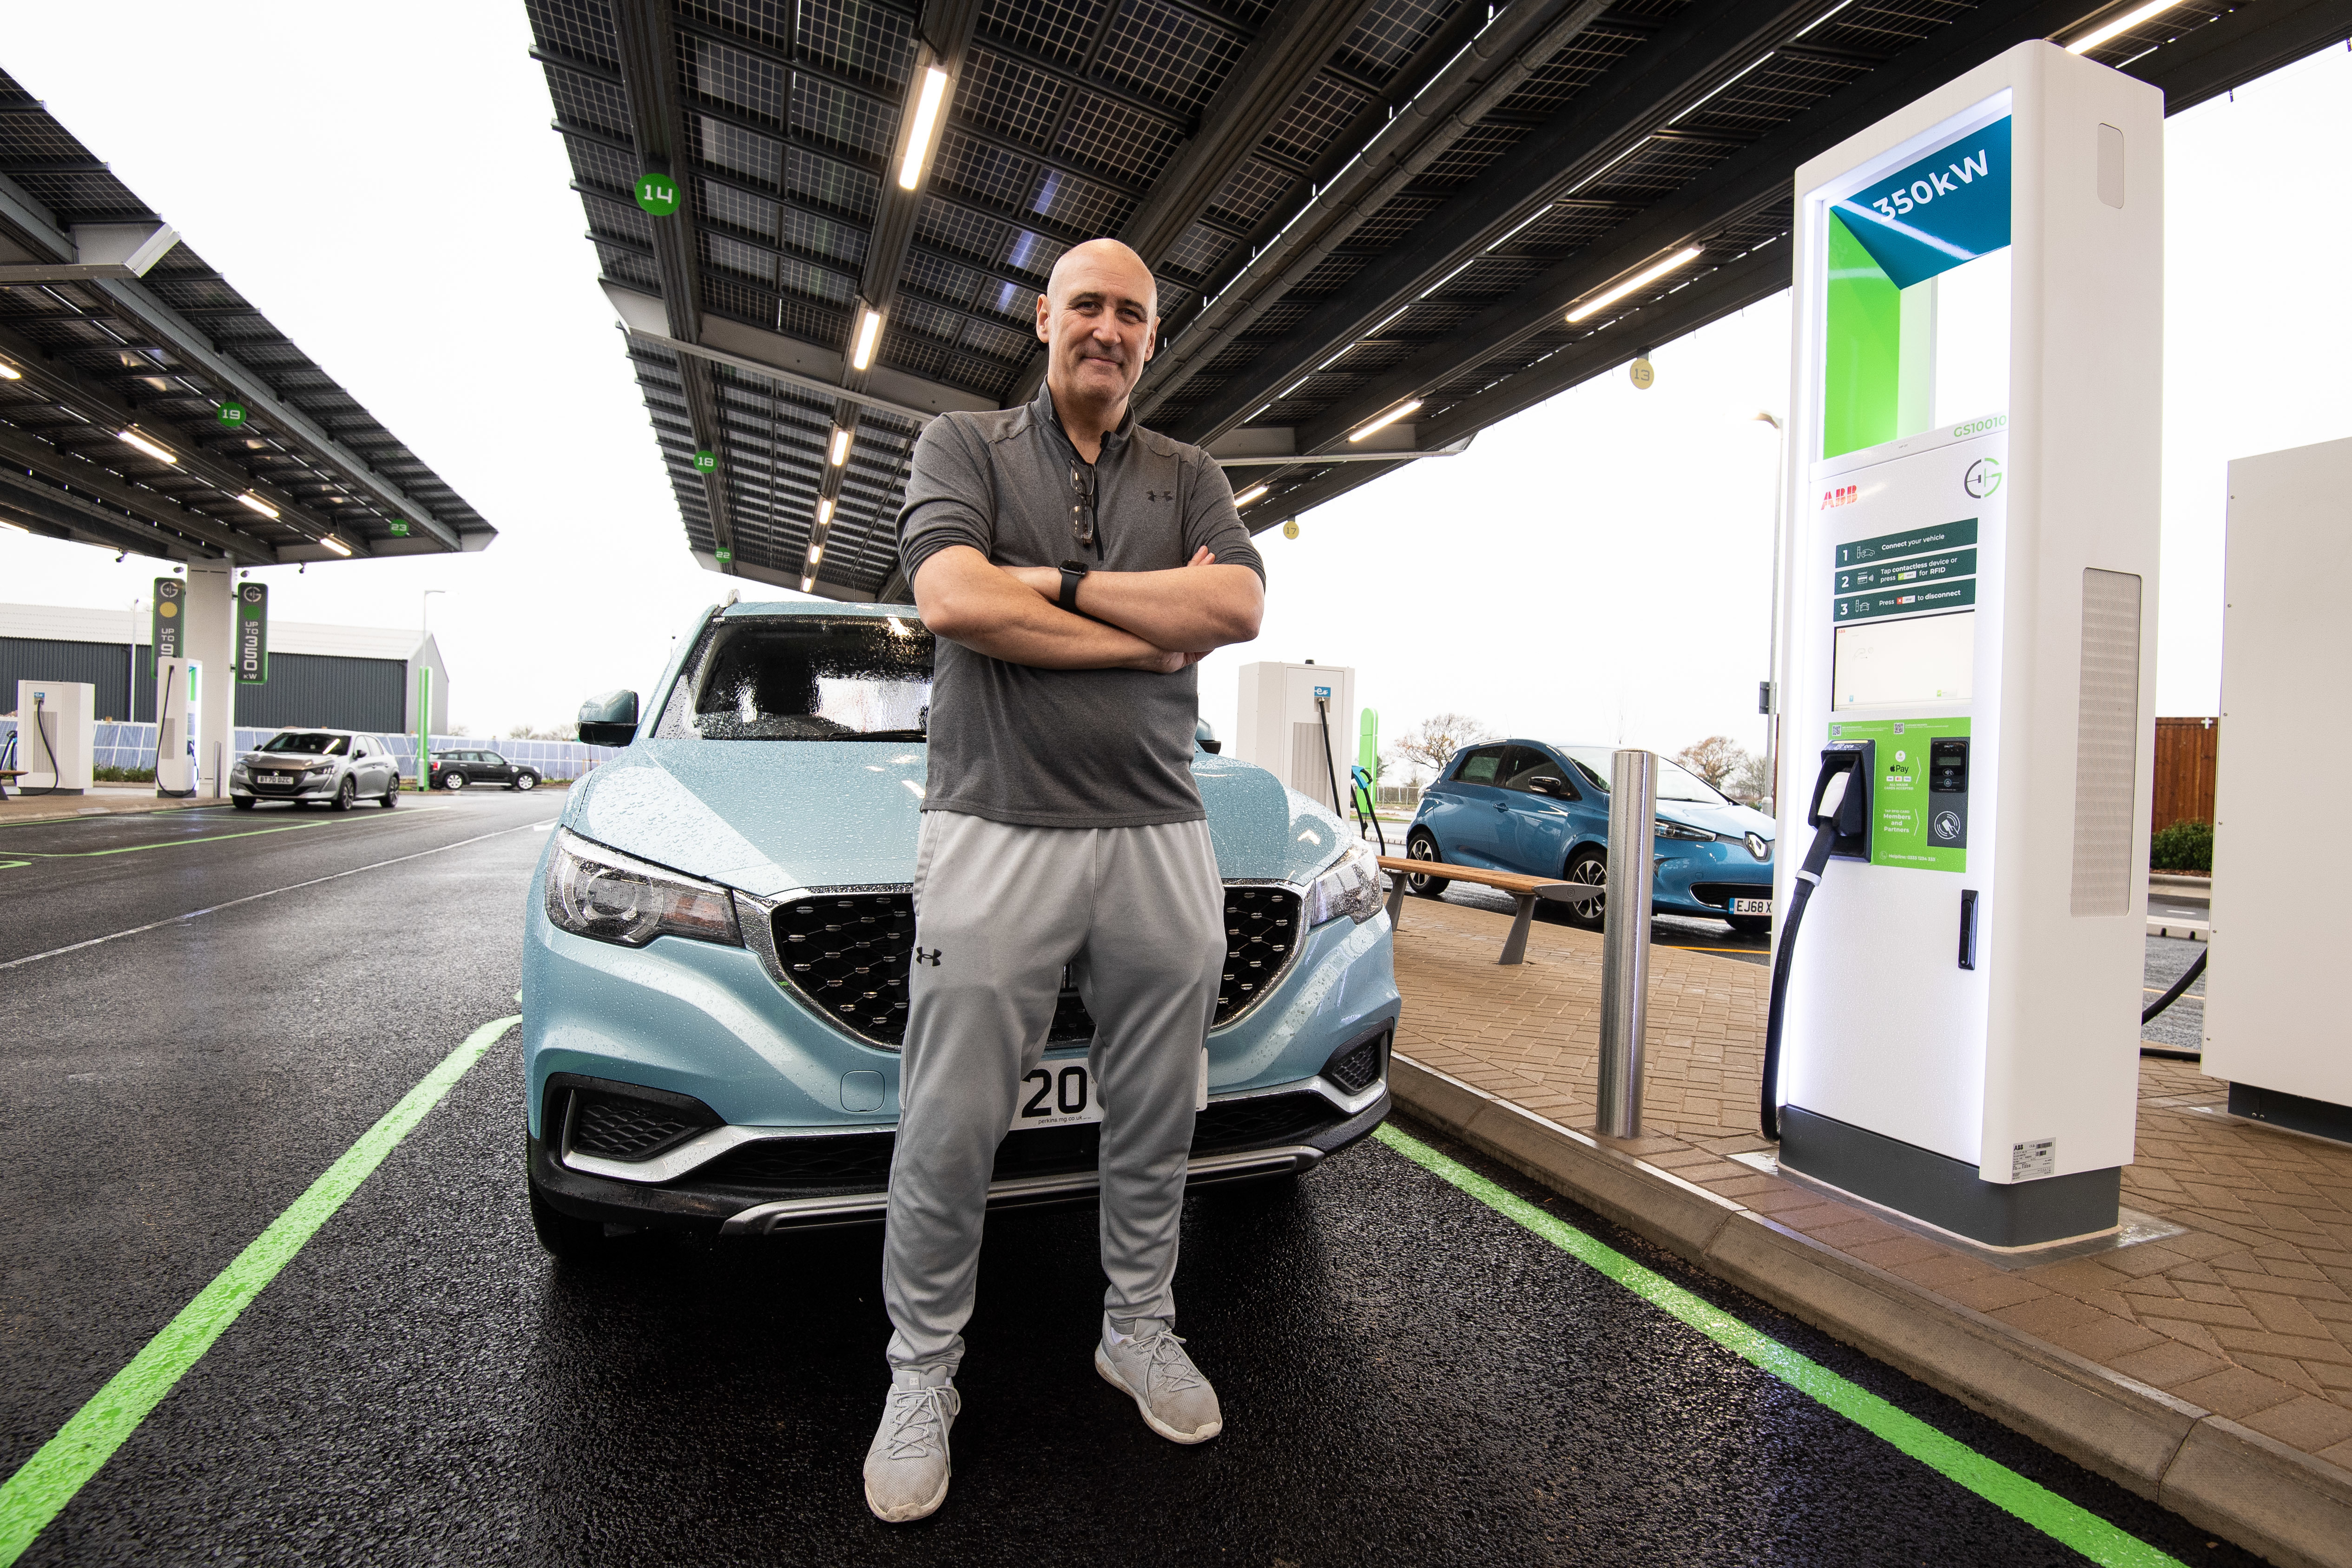 EDITORIAL USE ONLY Brian Cooke, from Essex is one of the first customers to charge his electric car at the newly opened GRIDSERVE, the UK's first Electric Forecourt, Essex.